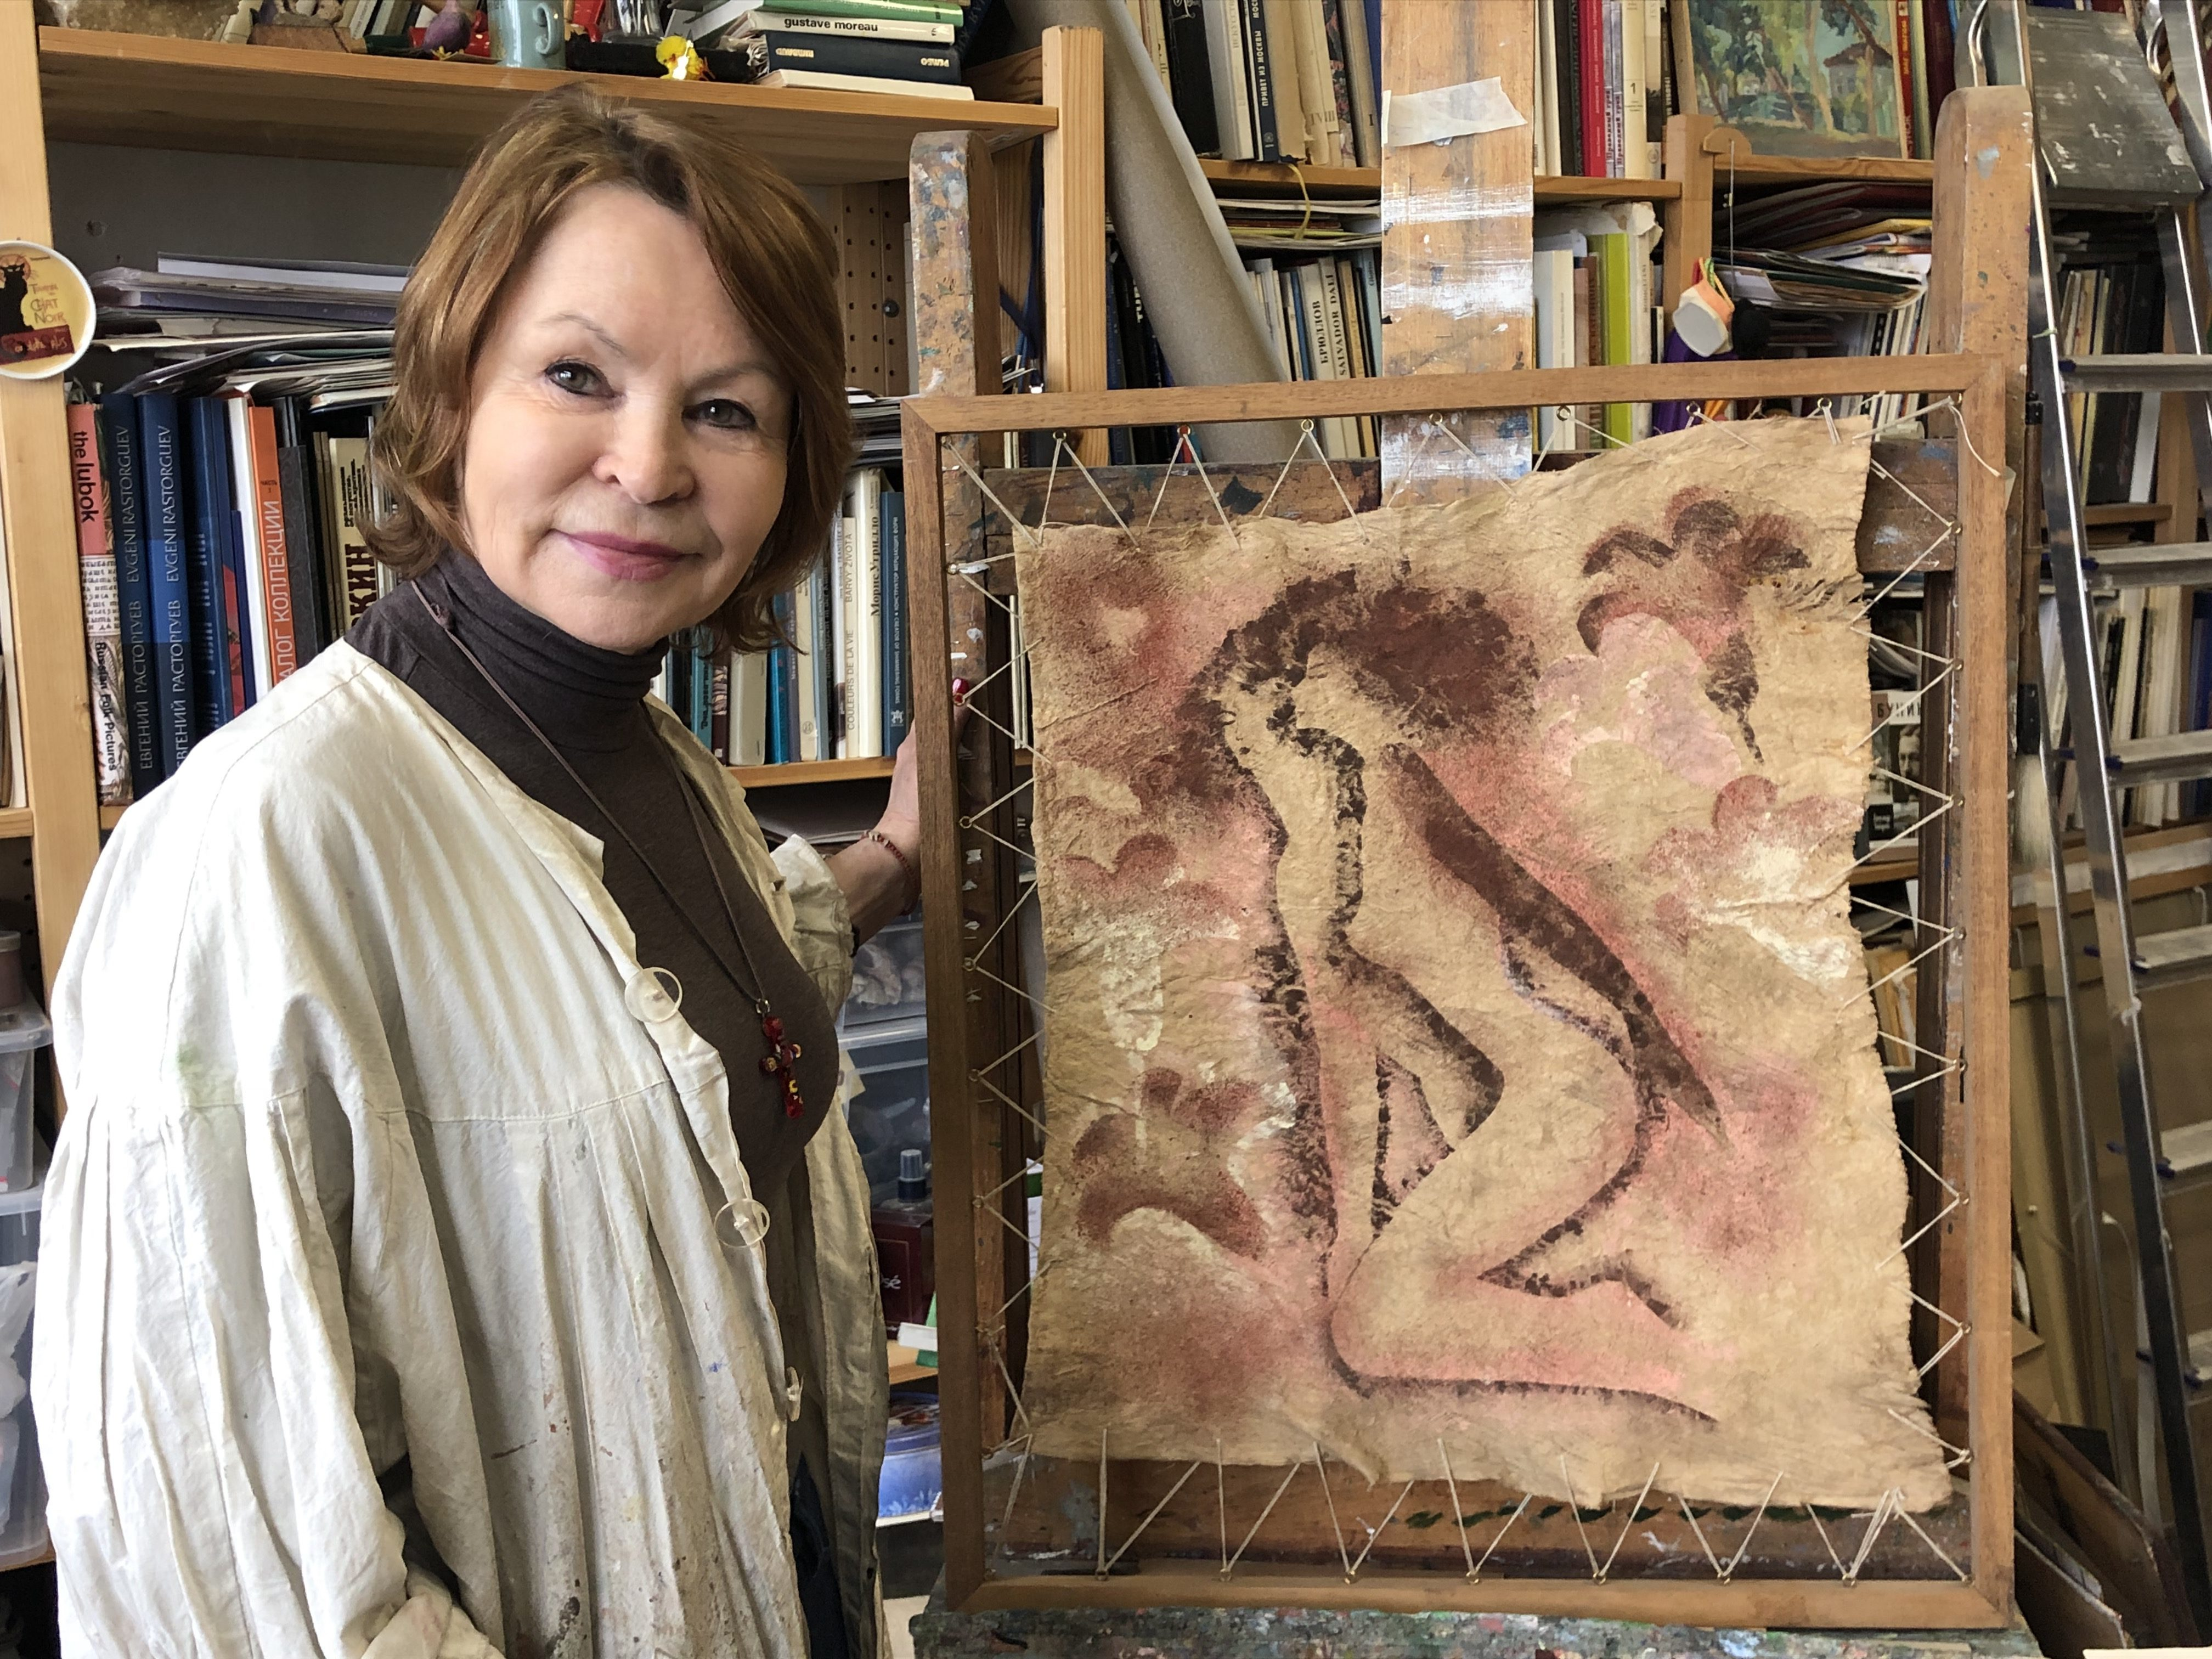 Loudmila Varlamova, a painter, in her studio.